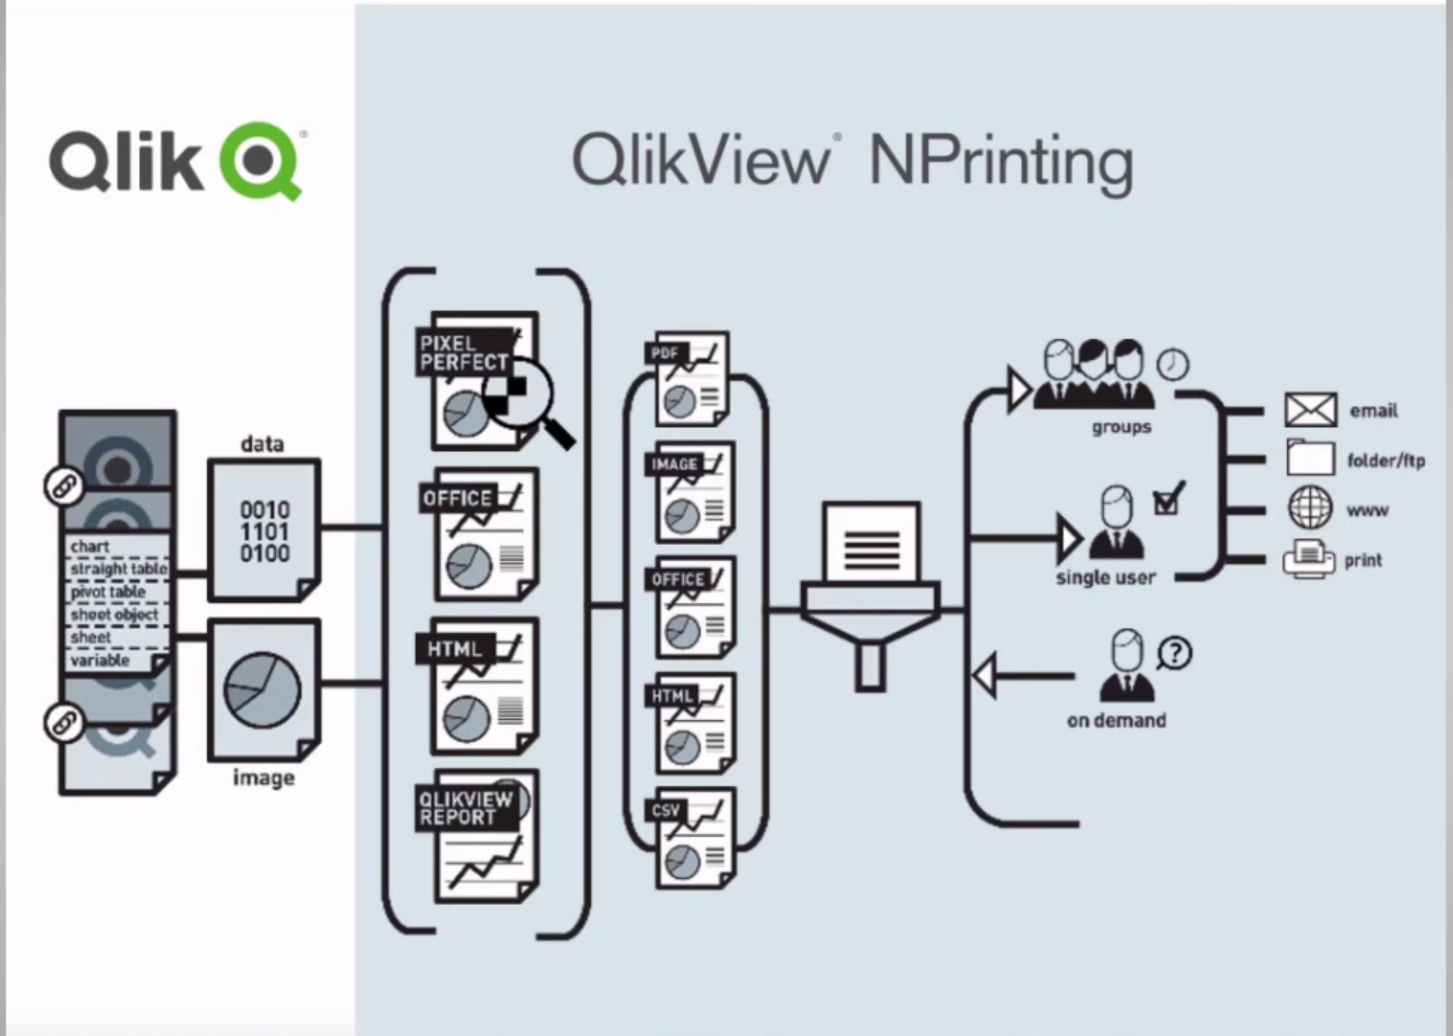 QlikView NPrinting Overview